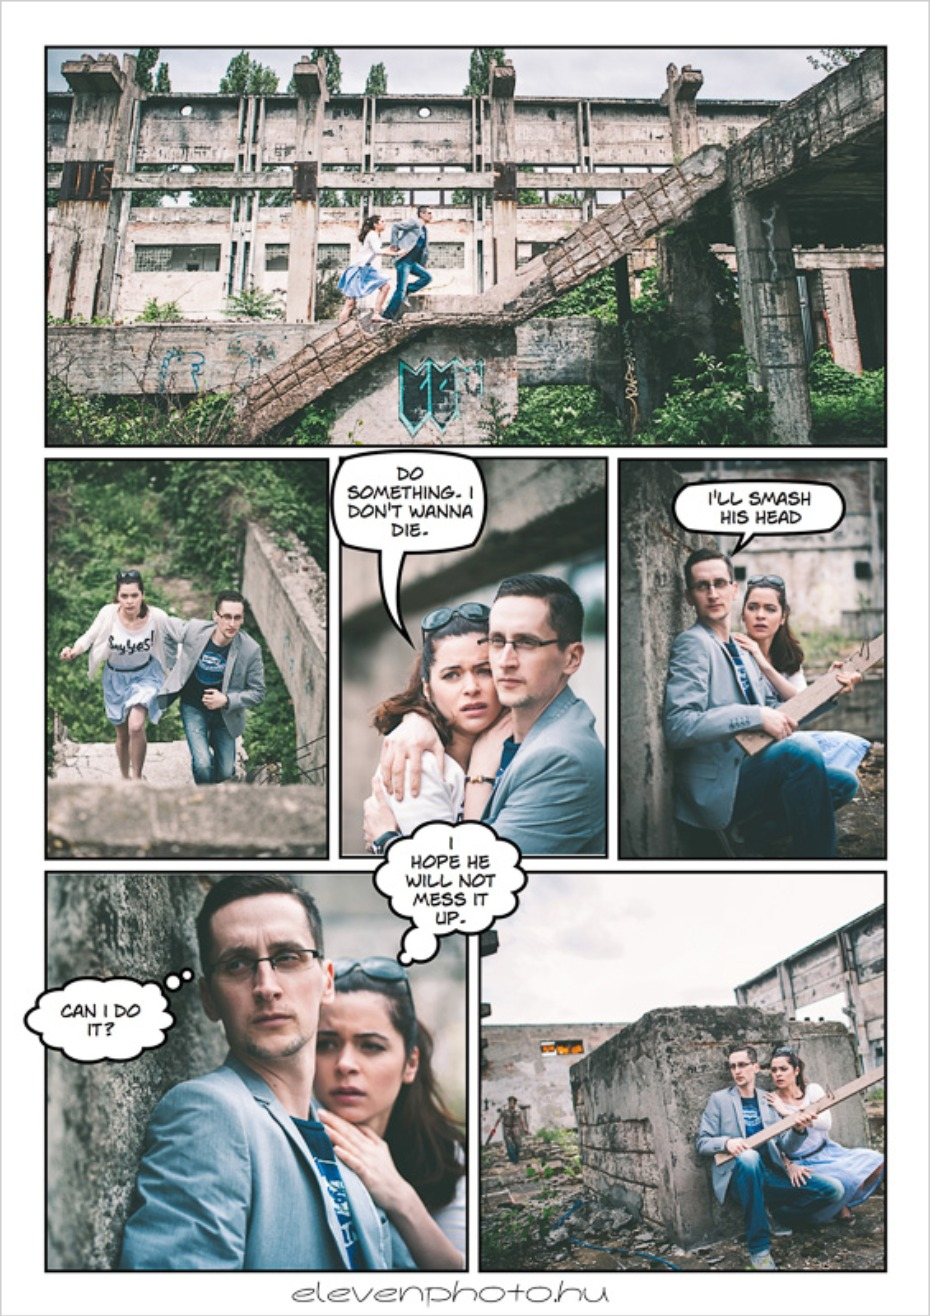 engagement-comic-book